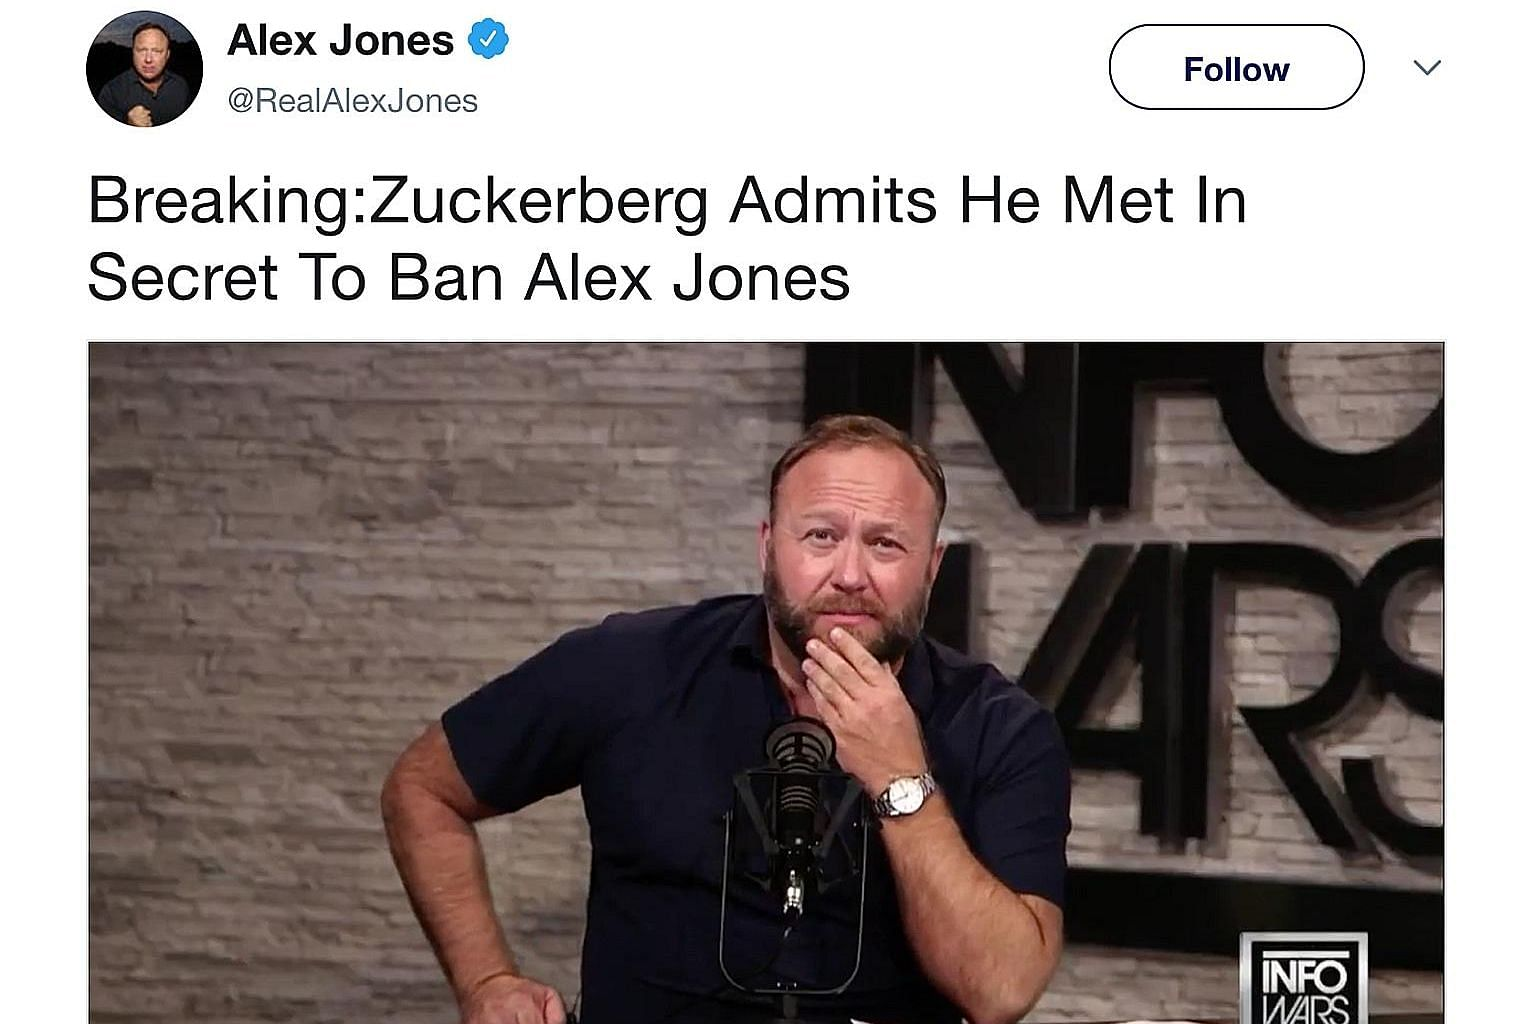 Far-right broadcaster Alex Jones, whose content has been banned on Facebook, YouTube, Apple and Spotify, continues to promote his talk show Infowars on Twitter and is actively trying to create new accounts to promote his material on other platforms.